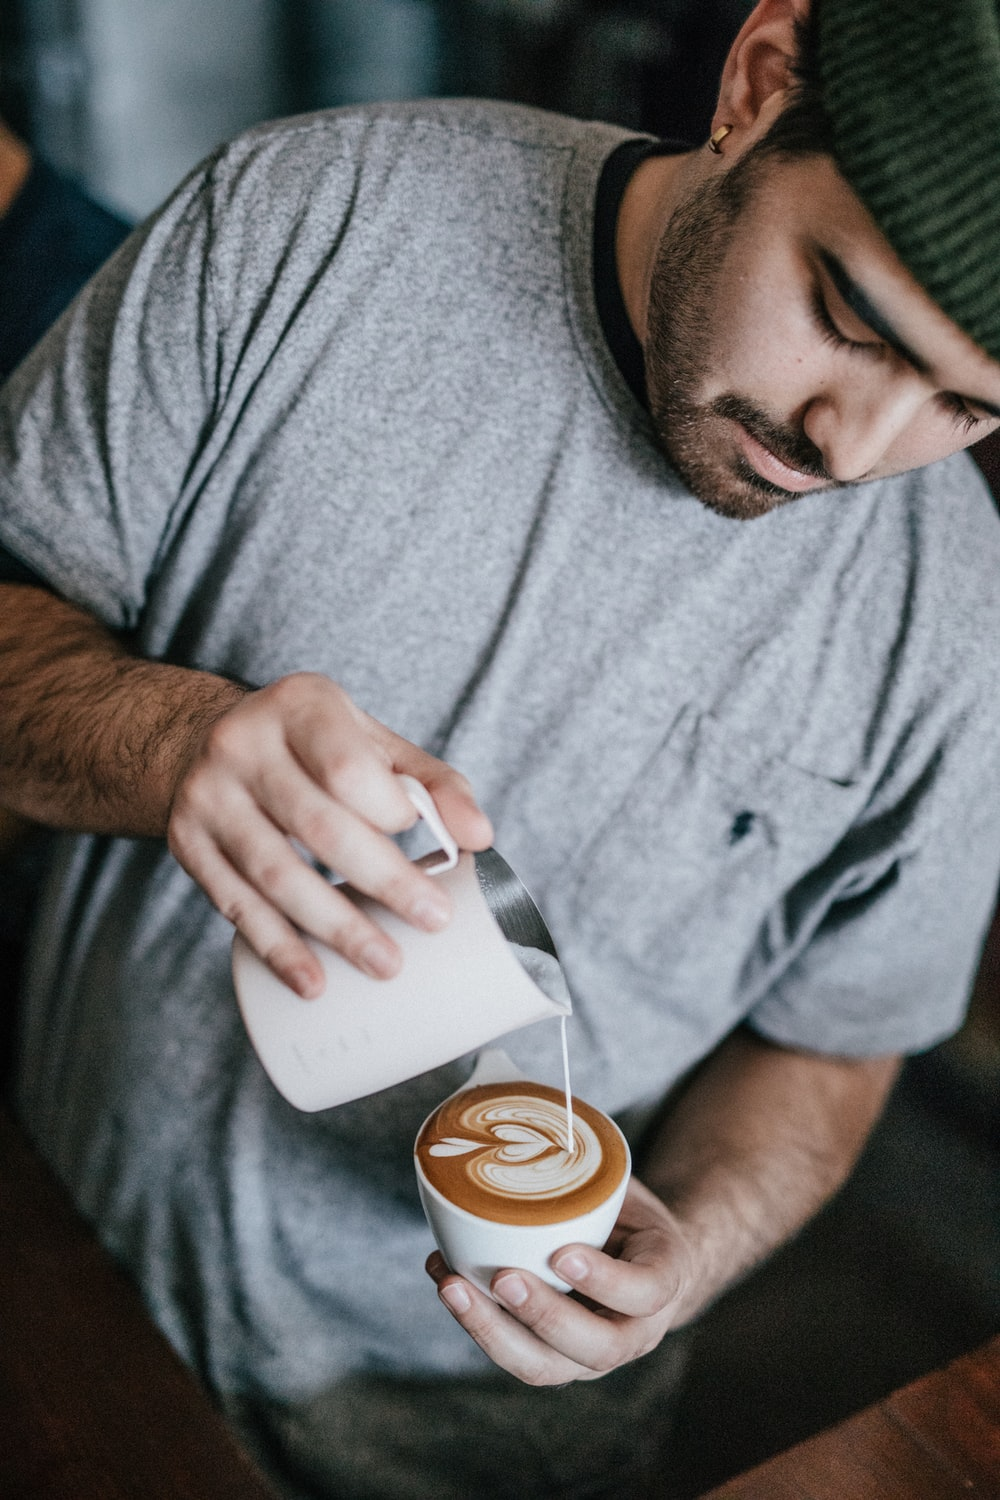 man in gray crew-neck T-shirt making cappuccino